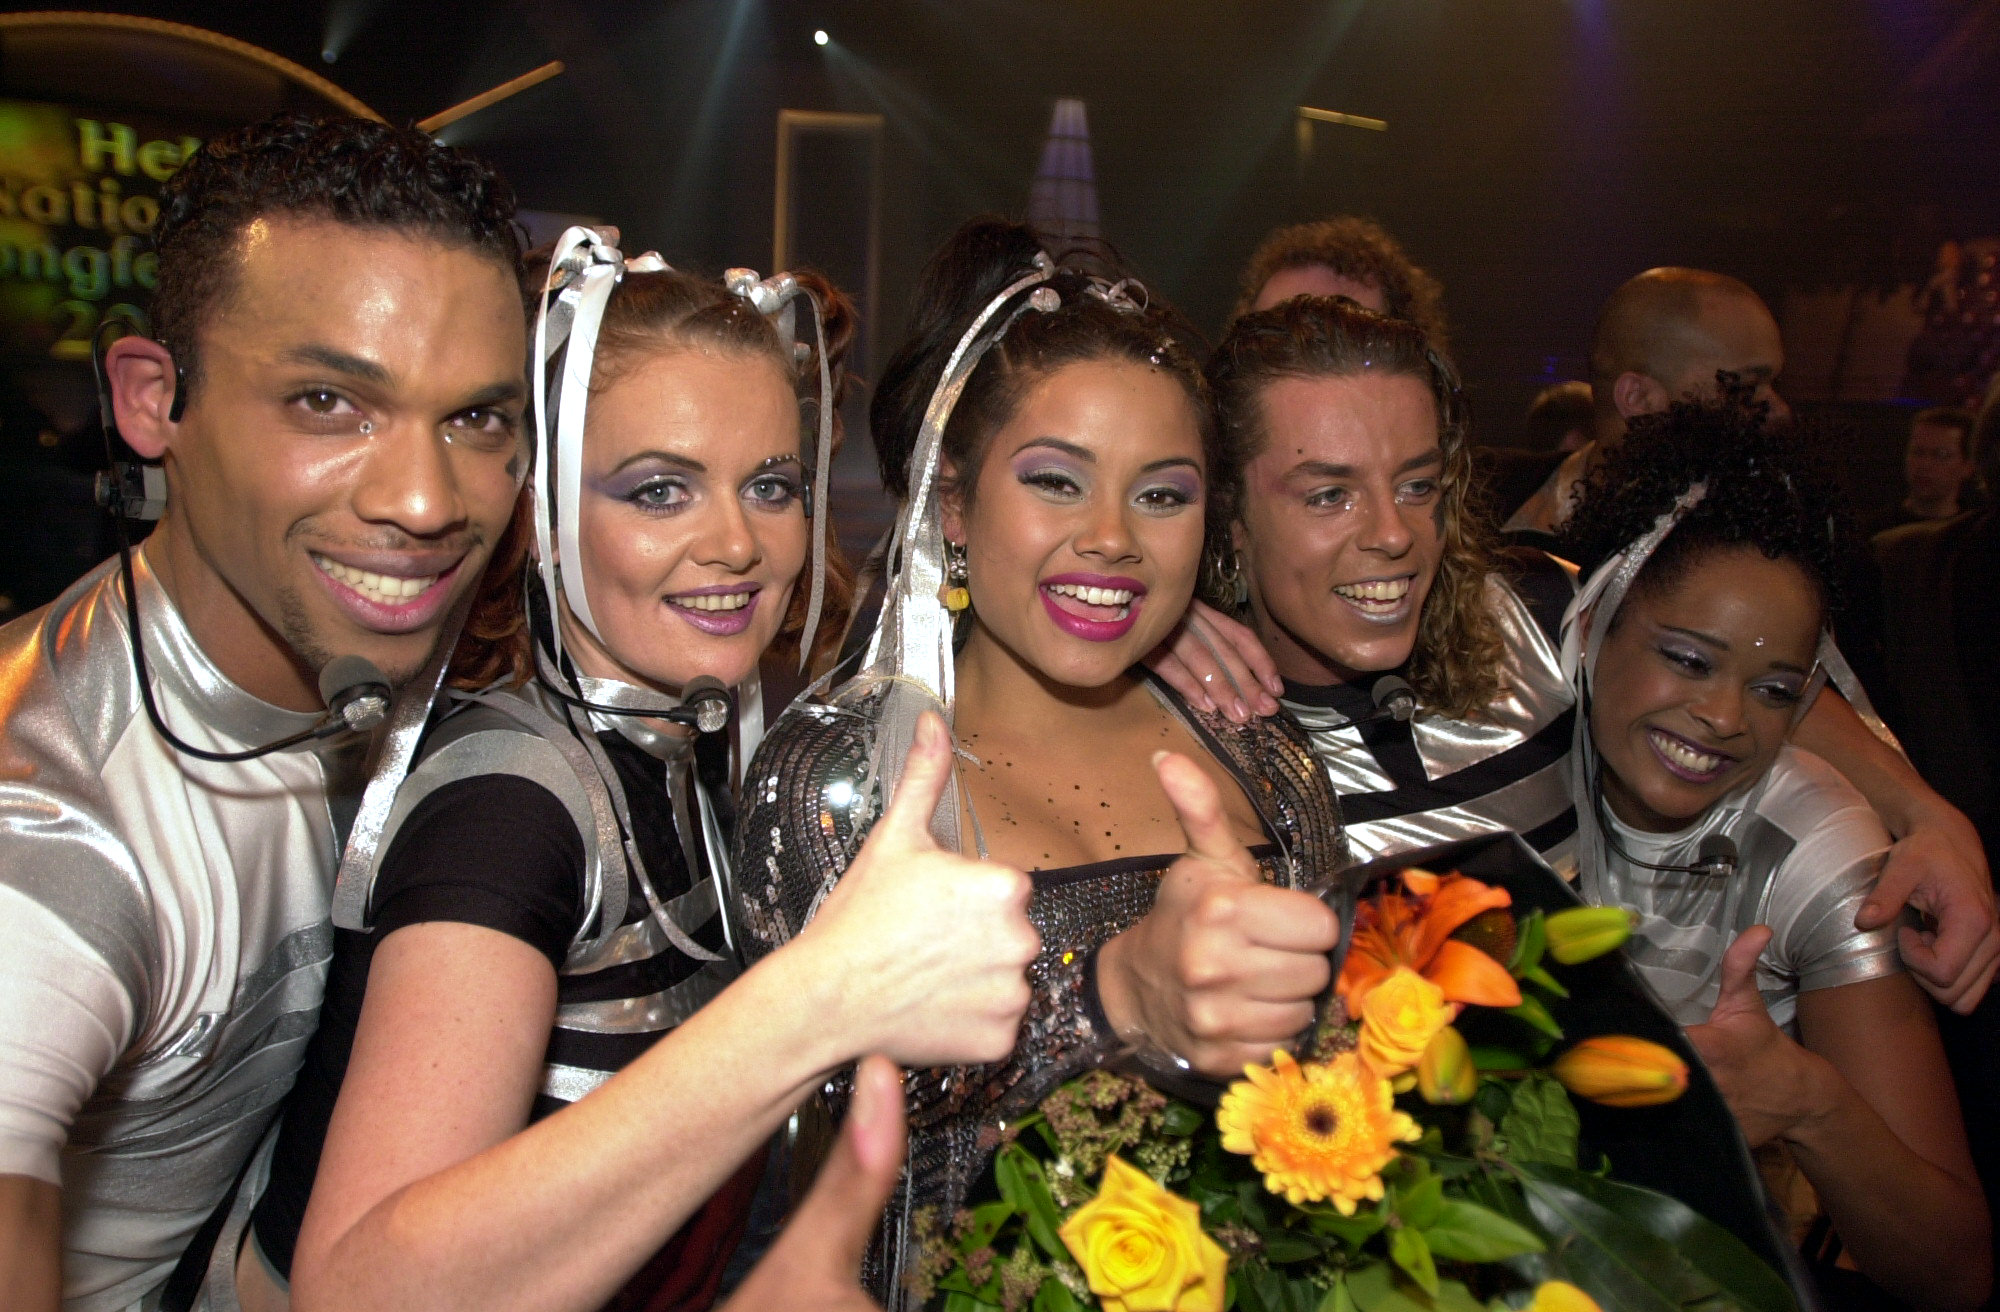 Nationaal songfestival, Linda Wagenmakers, winnaar, winner, actrice, actress, zangeres, singer, musical